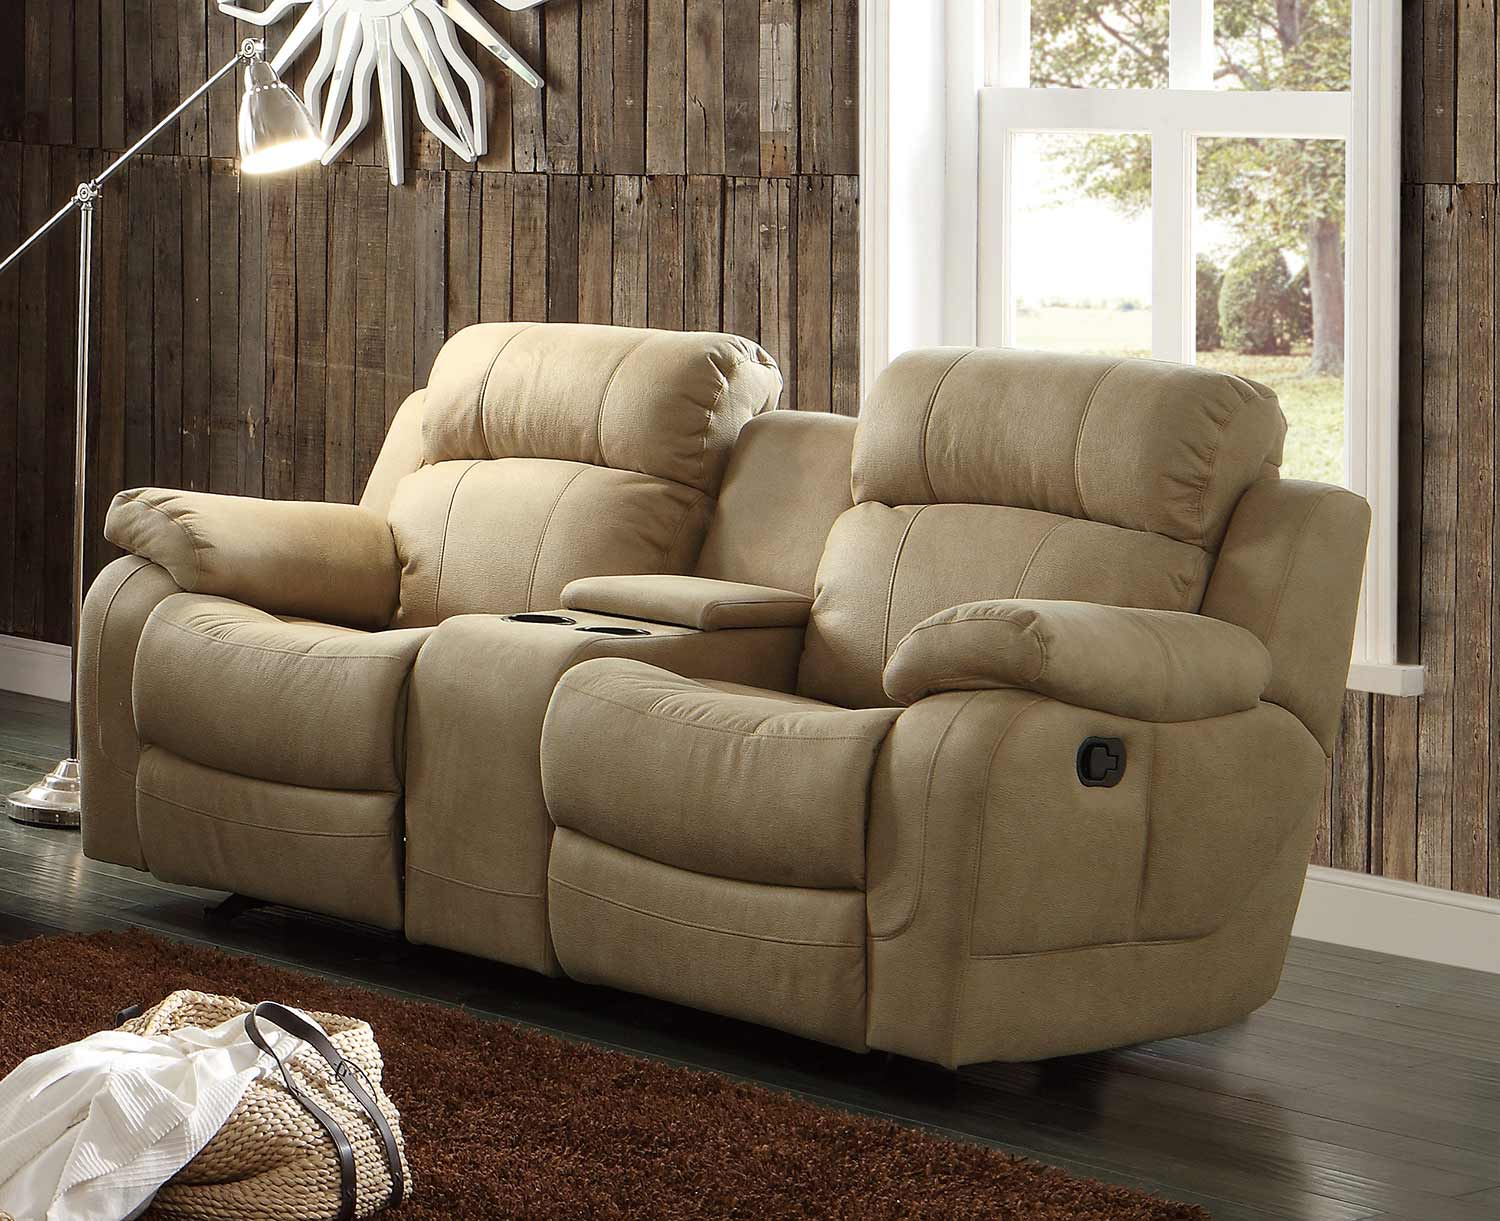 Homelegance Marille Double Glider Reclining Love Seat With